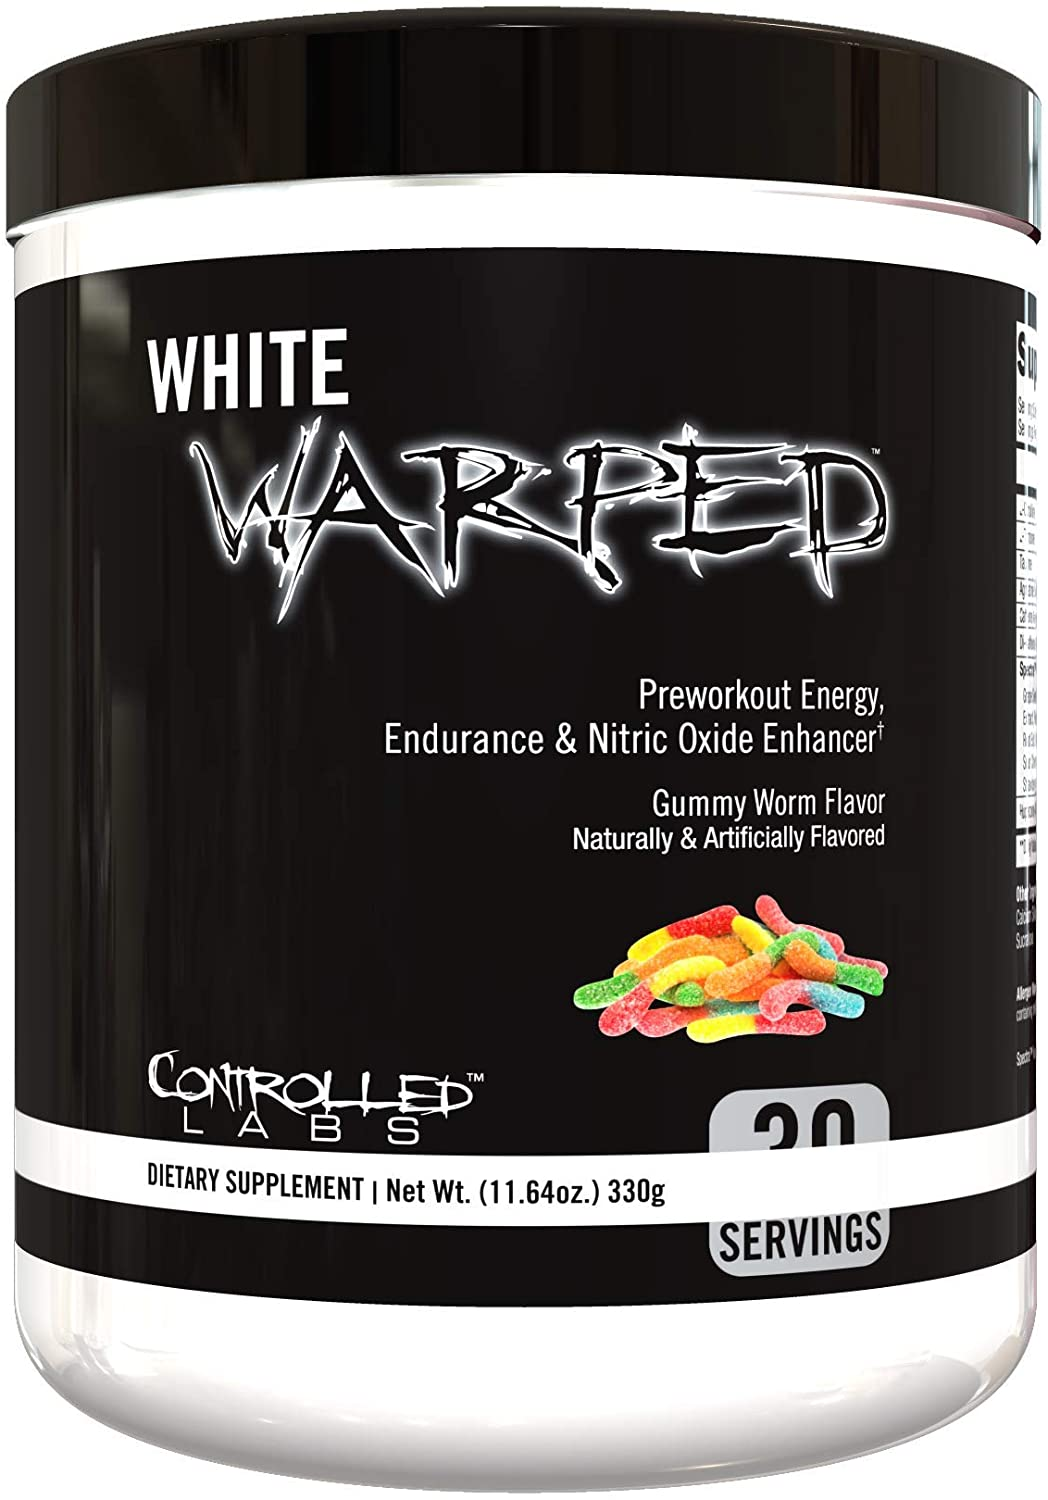 White Warped Pre-Workout Powder by Controlled Labs, 30 Servings for Increased Energy, Endurance, and Nitric Oxide Enhancement, Fast Absorbing for Workouts, Training, Sports and Bodybuilding